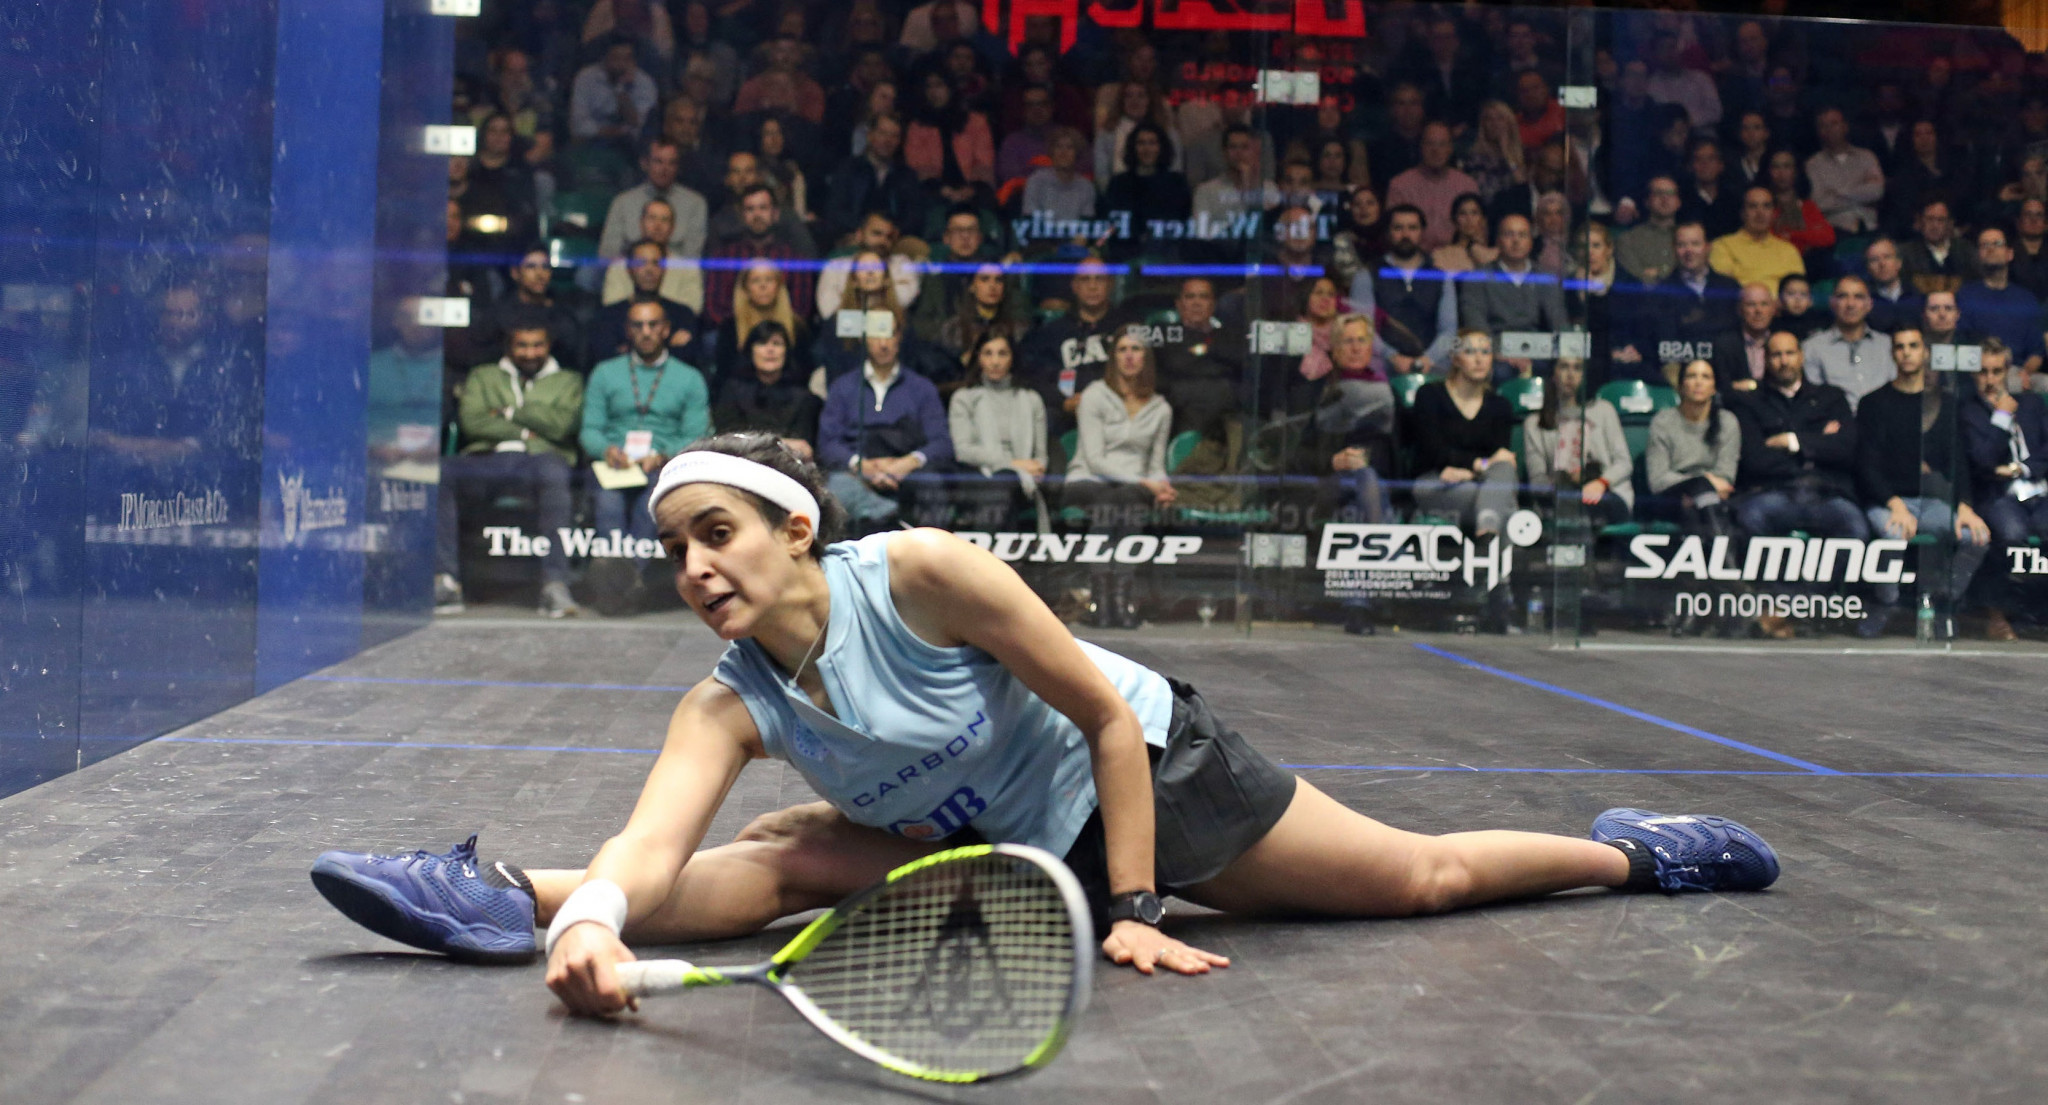 Nour El Tayeb is through to the women's final, where she will face fellow Egyptian Nour El Sherbini ©PSA